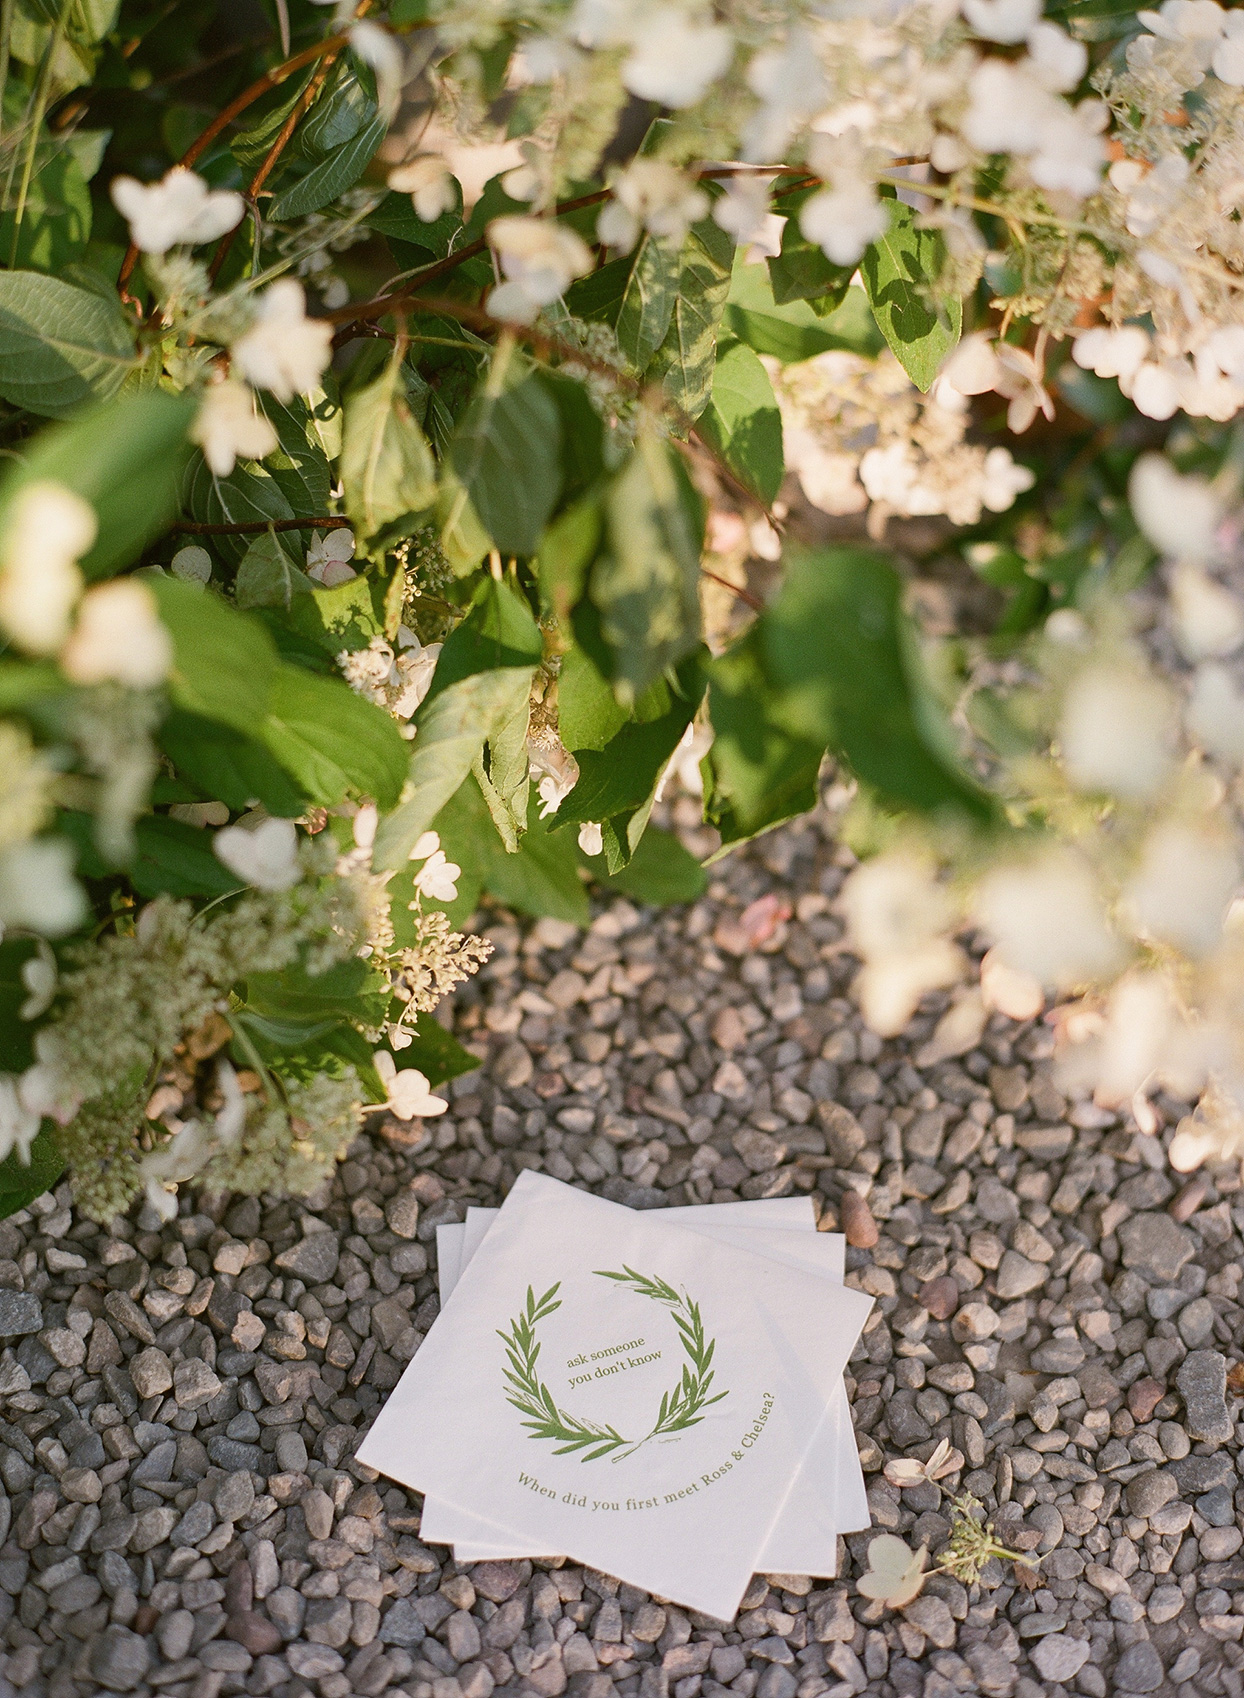 customized rehearsal dinner napkins and greenery